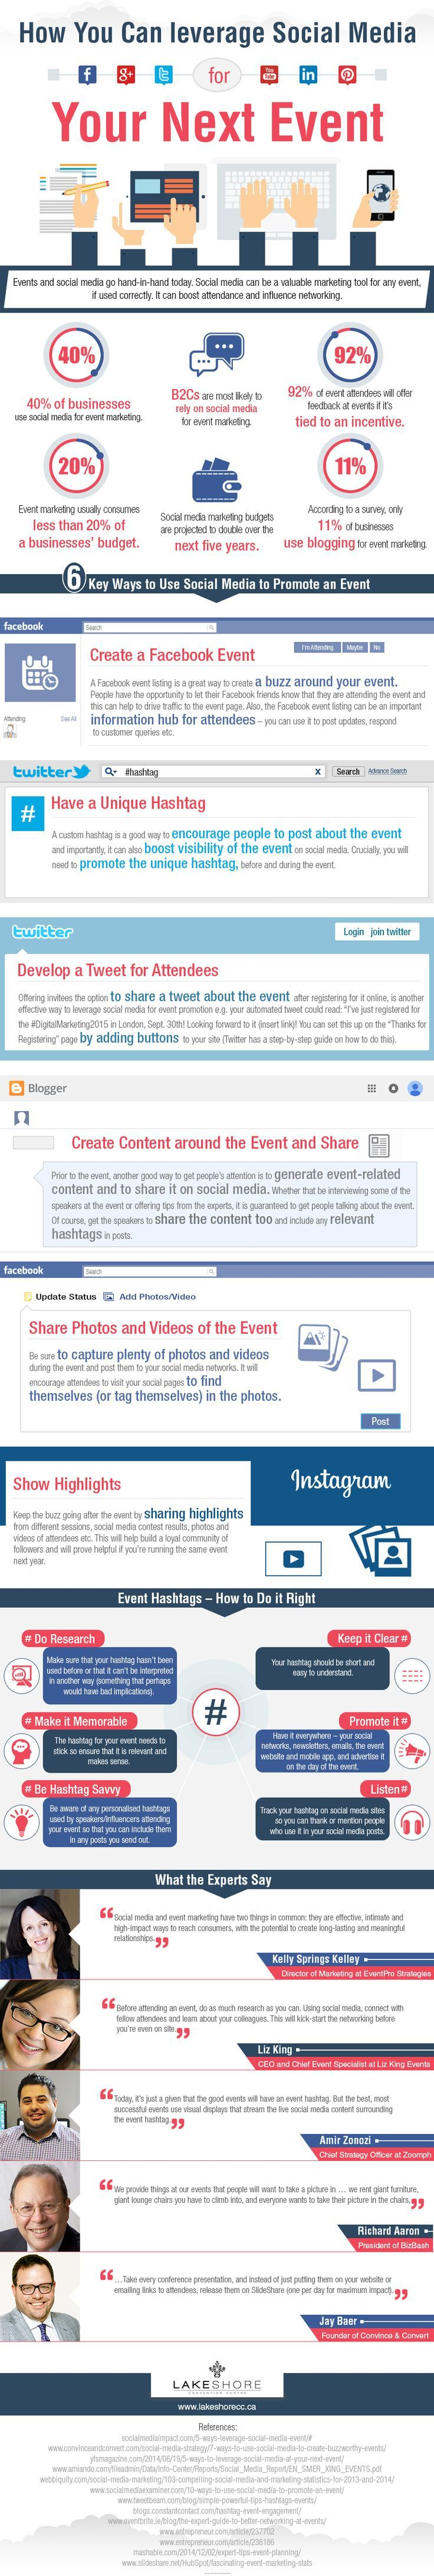 How to leverage social media for event marketing.  • Social media marketing budgets are projected to double over the next five years. • Yet—less than half of businesses use social media for event marketing, and just 11% use blogging to market events. • A